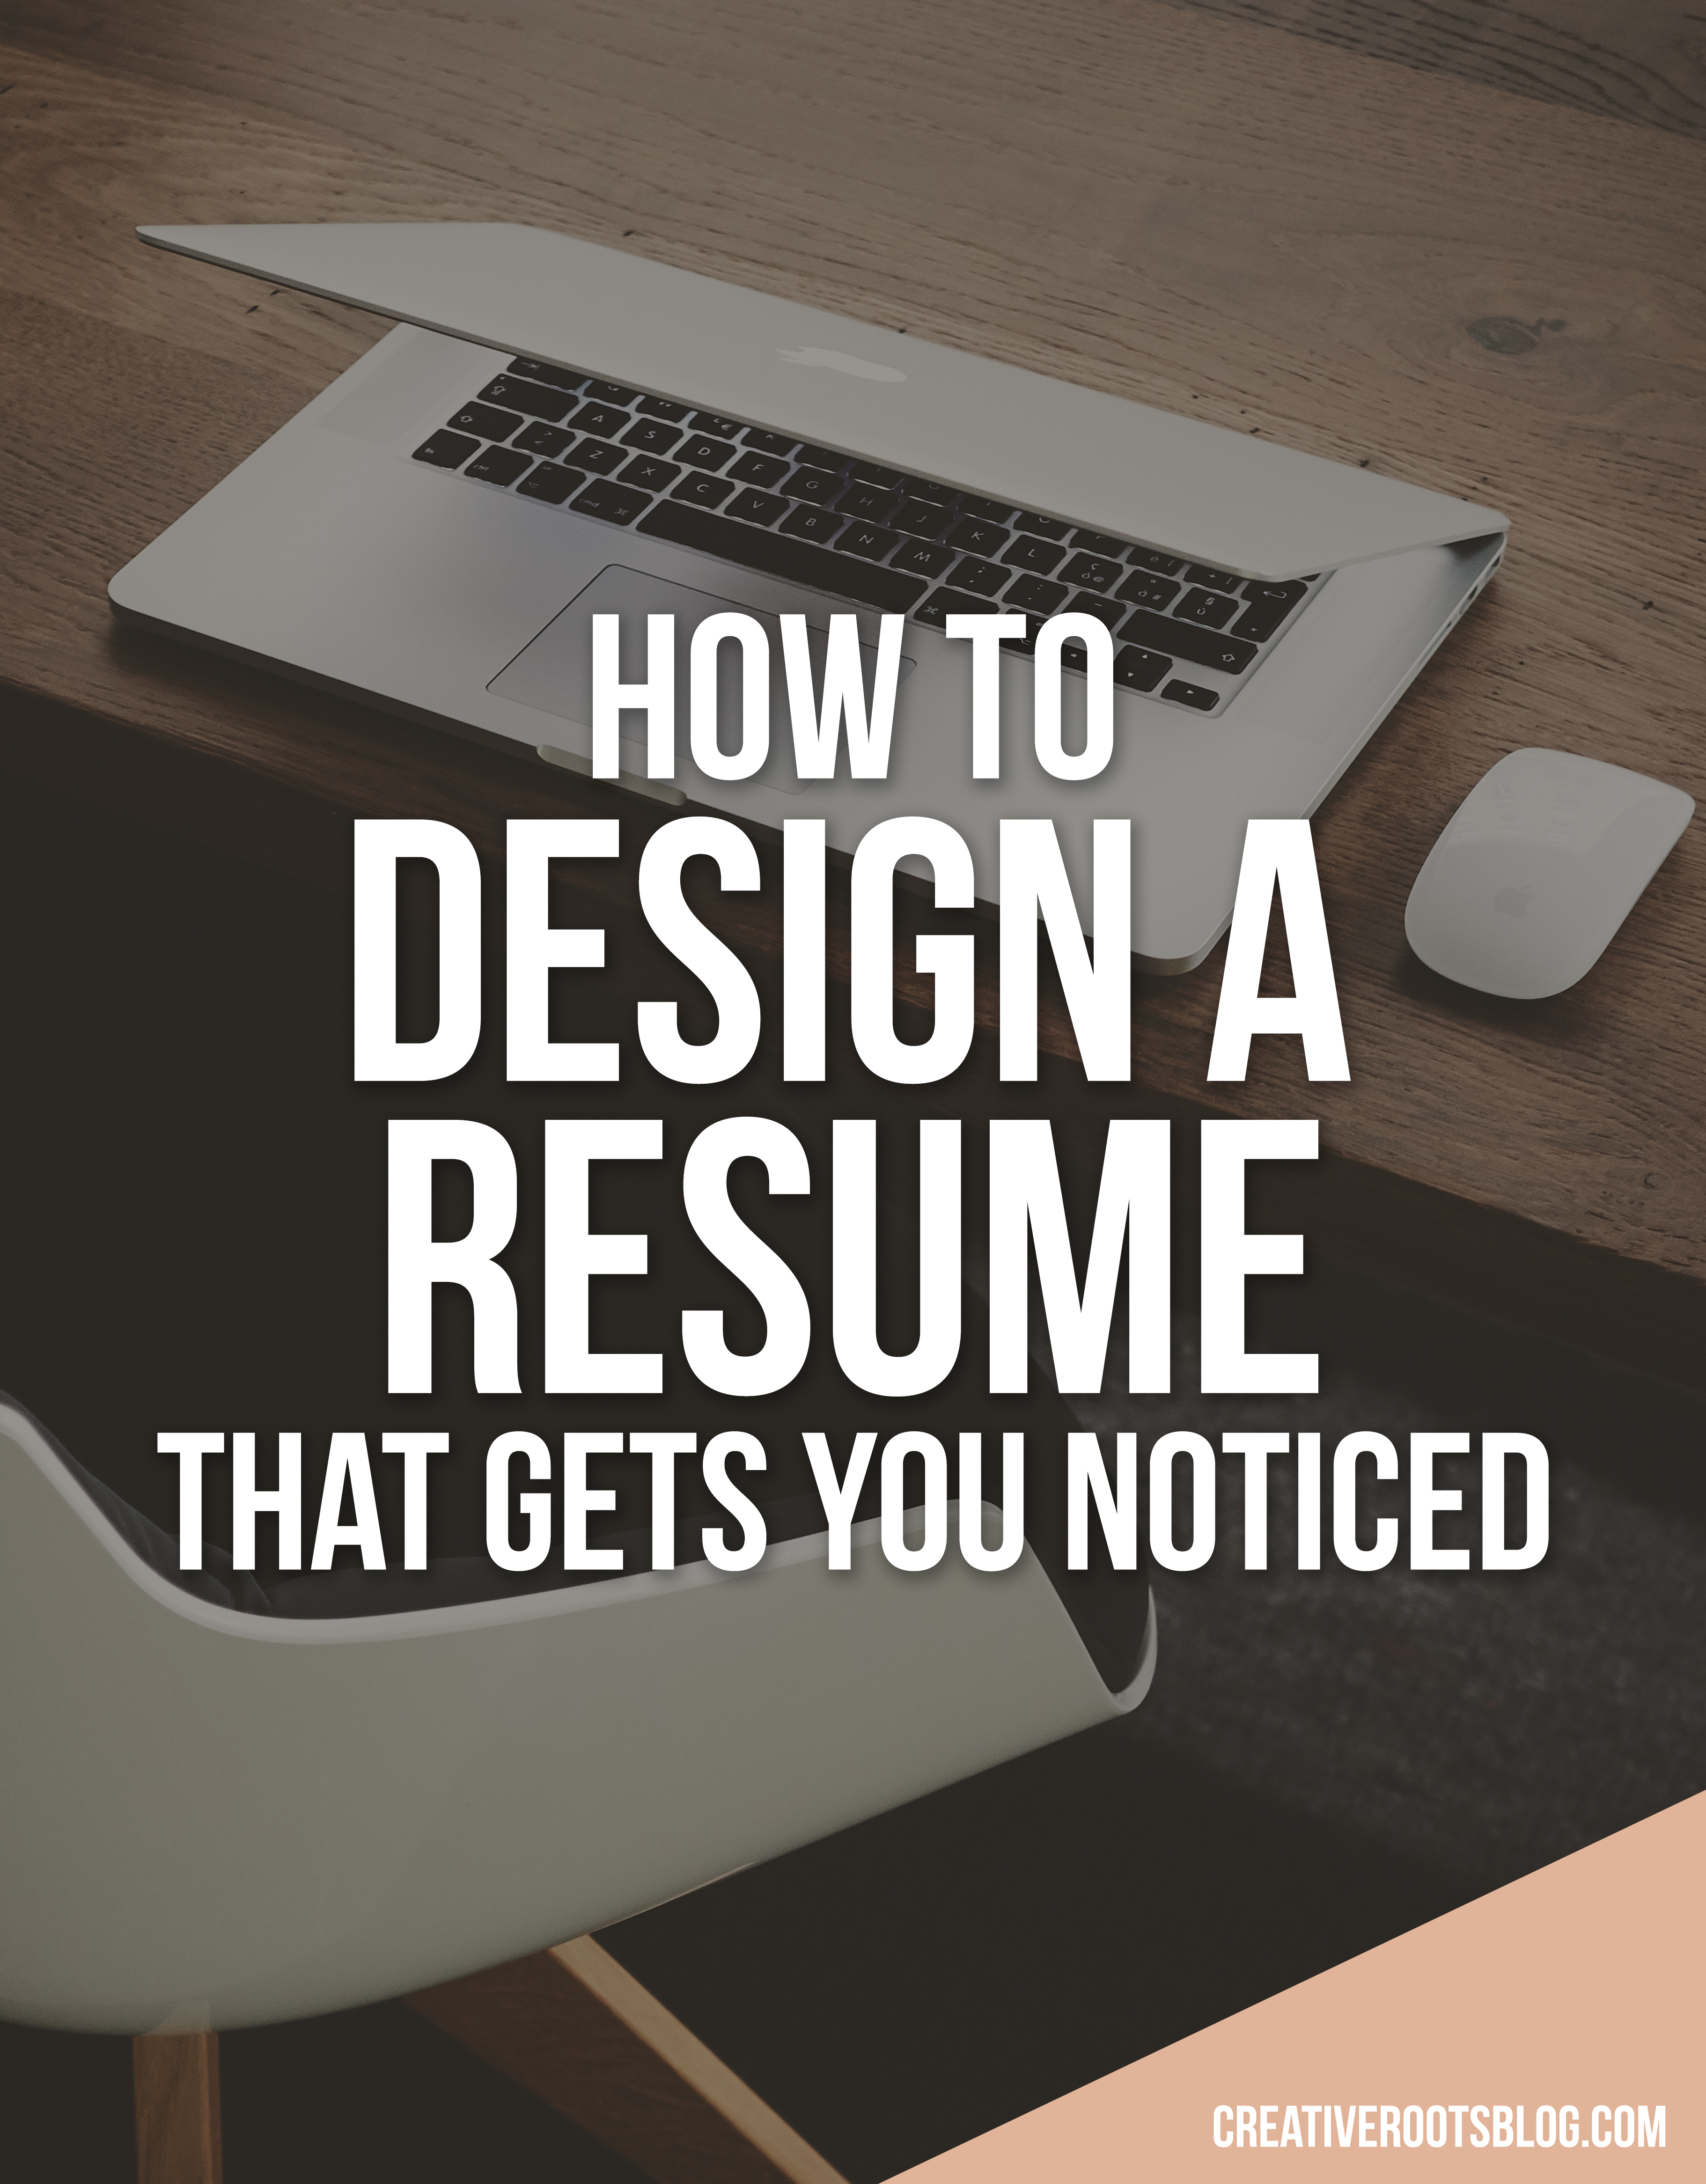 How to Design a Resume That Gets